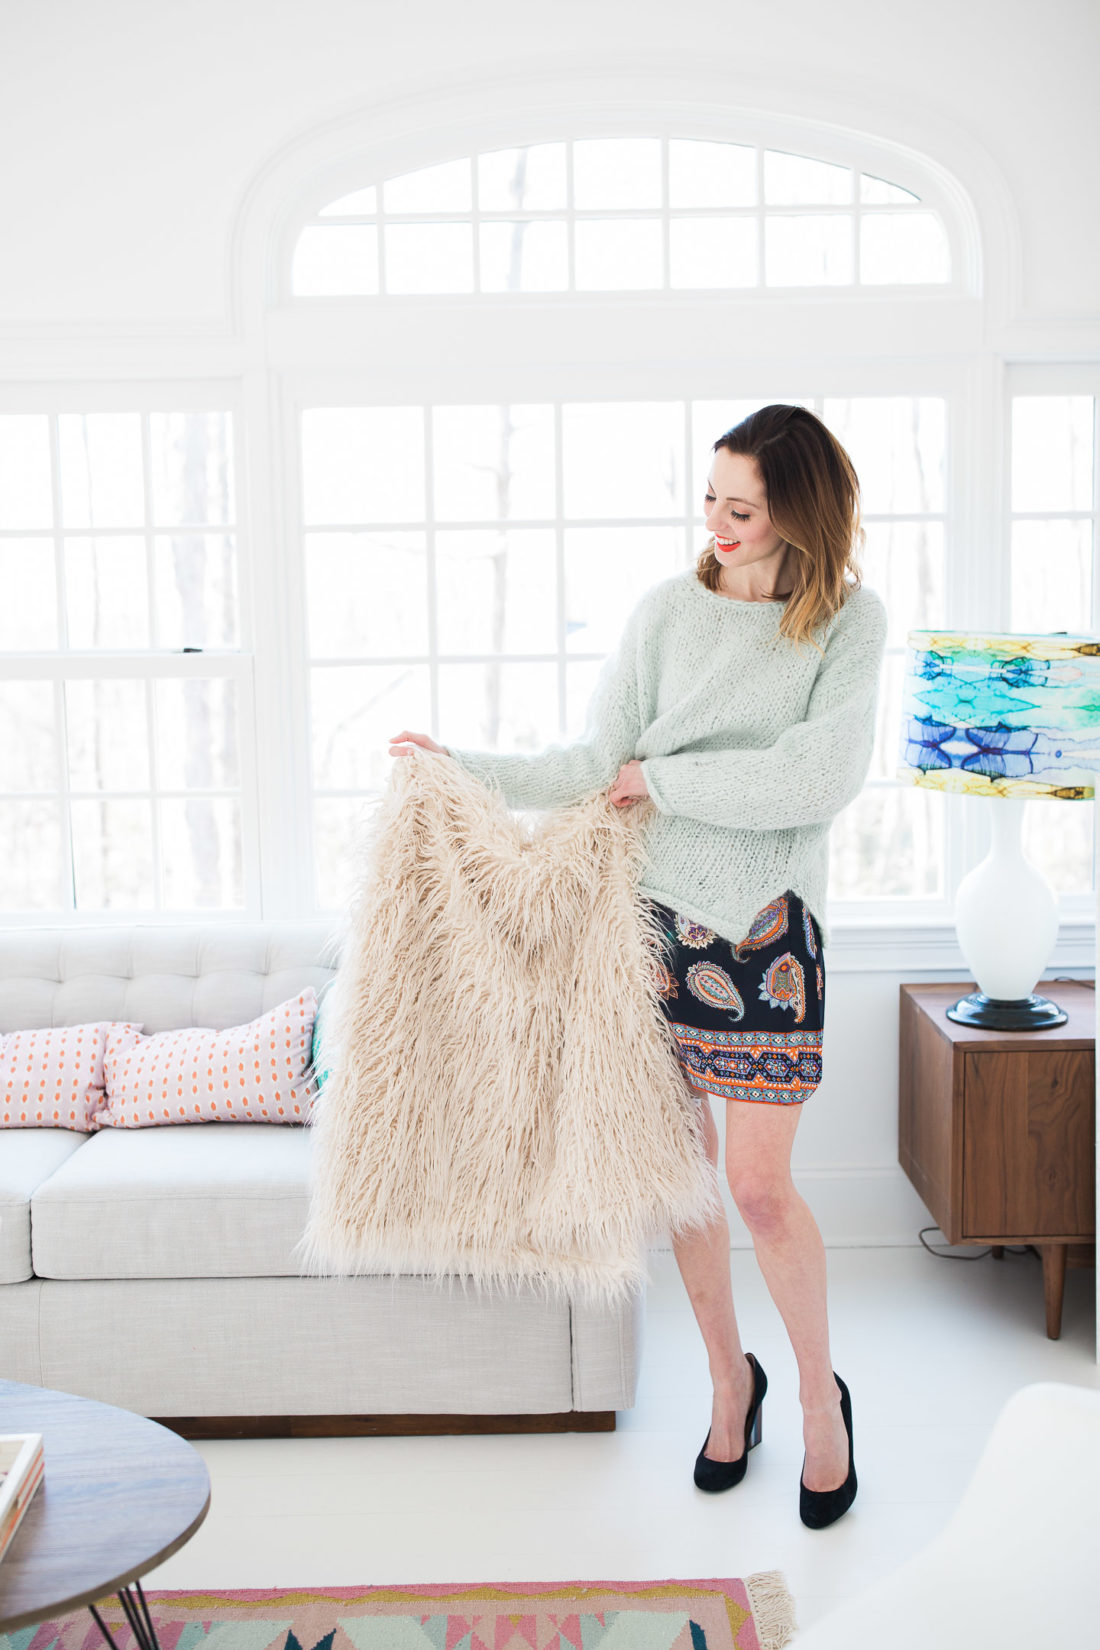 Eva Amurri Martino holds up a fuzzy shag throw blanket in her studio